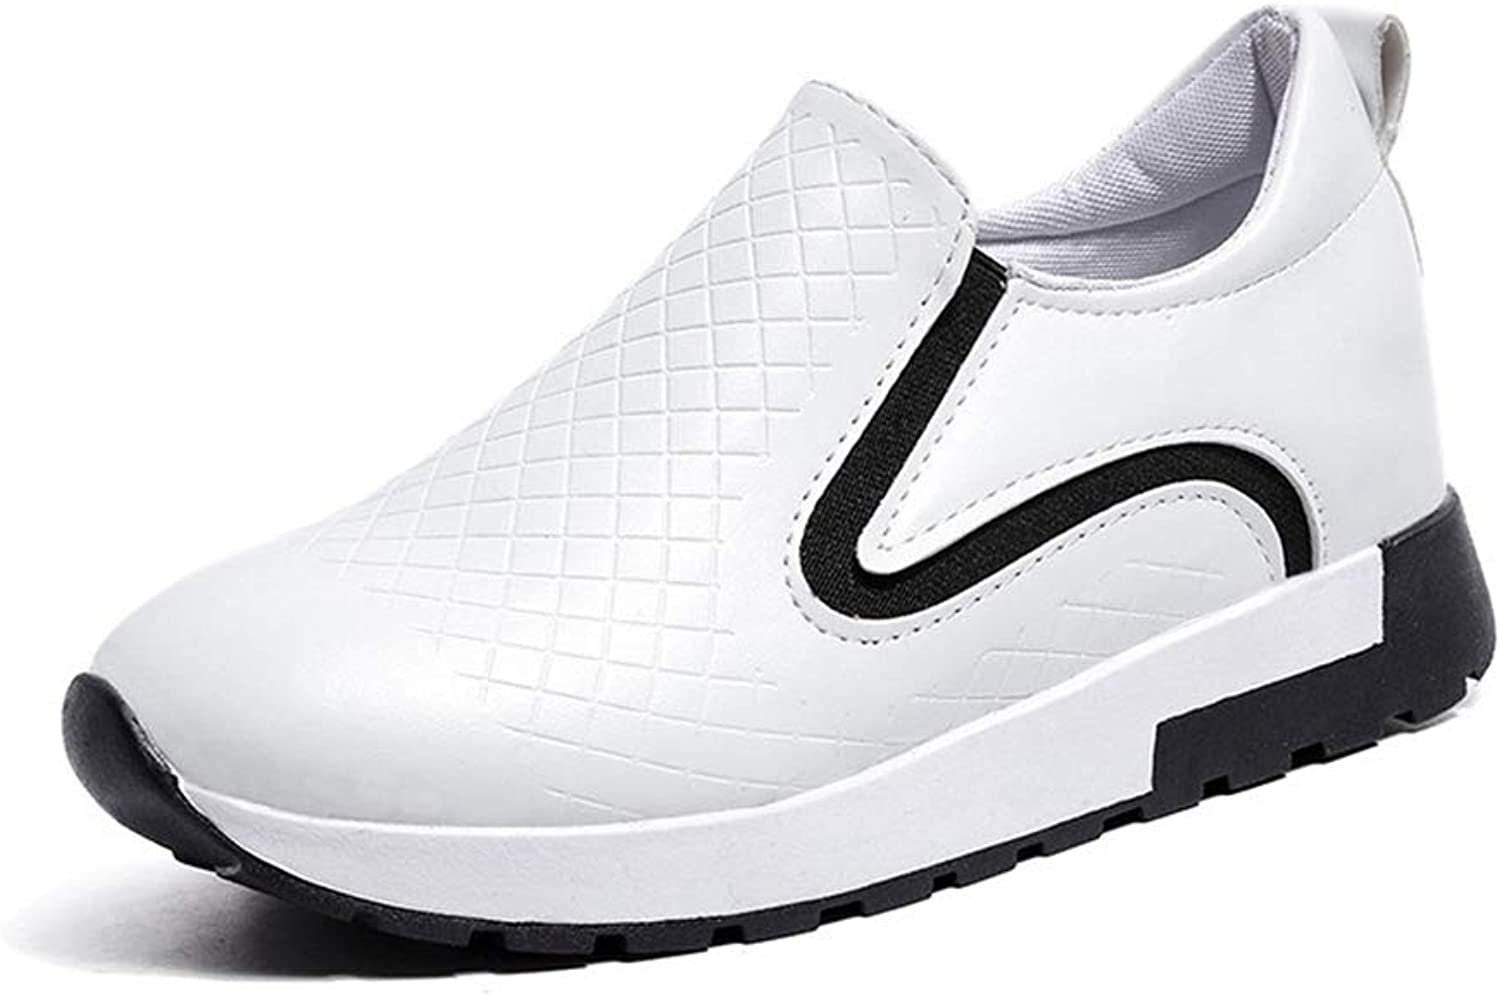 Btrada Spring Platform Slip on Women Vulcanize shoes White Casual Female Thick Sole Wedges Sneakers